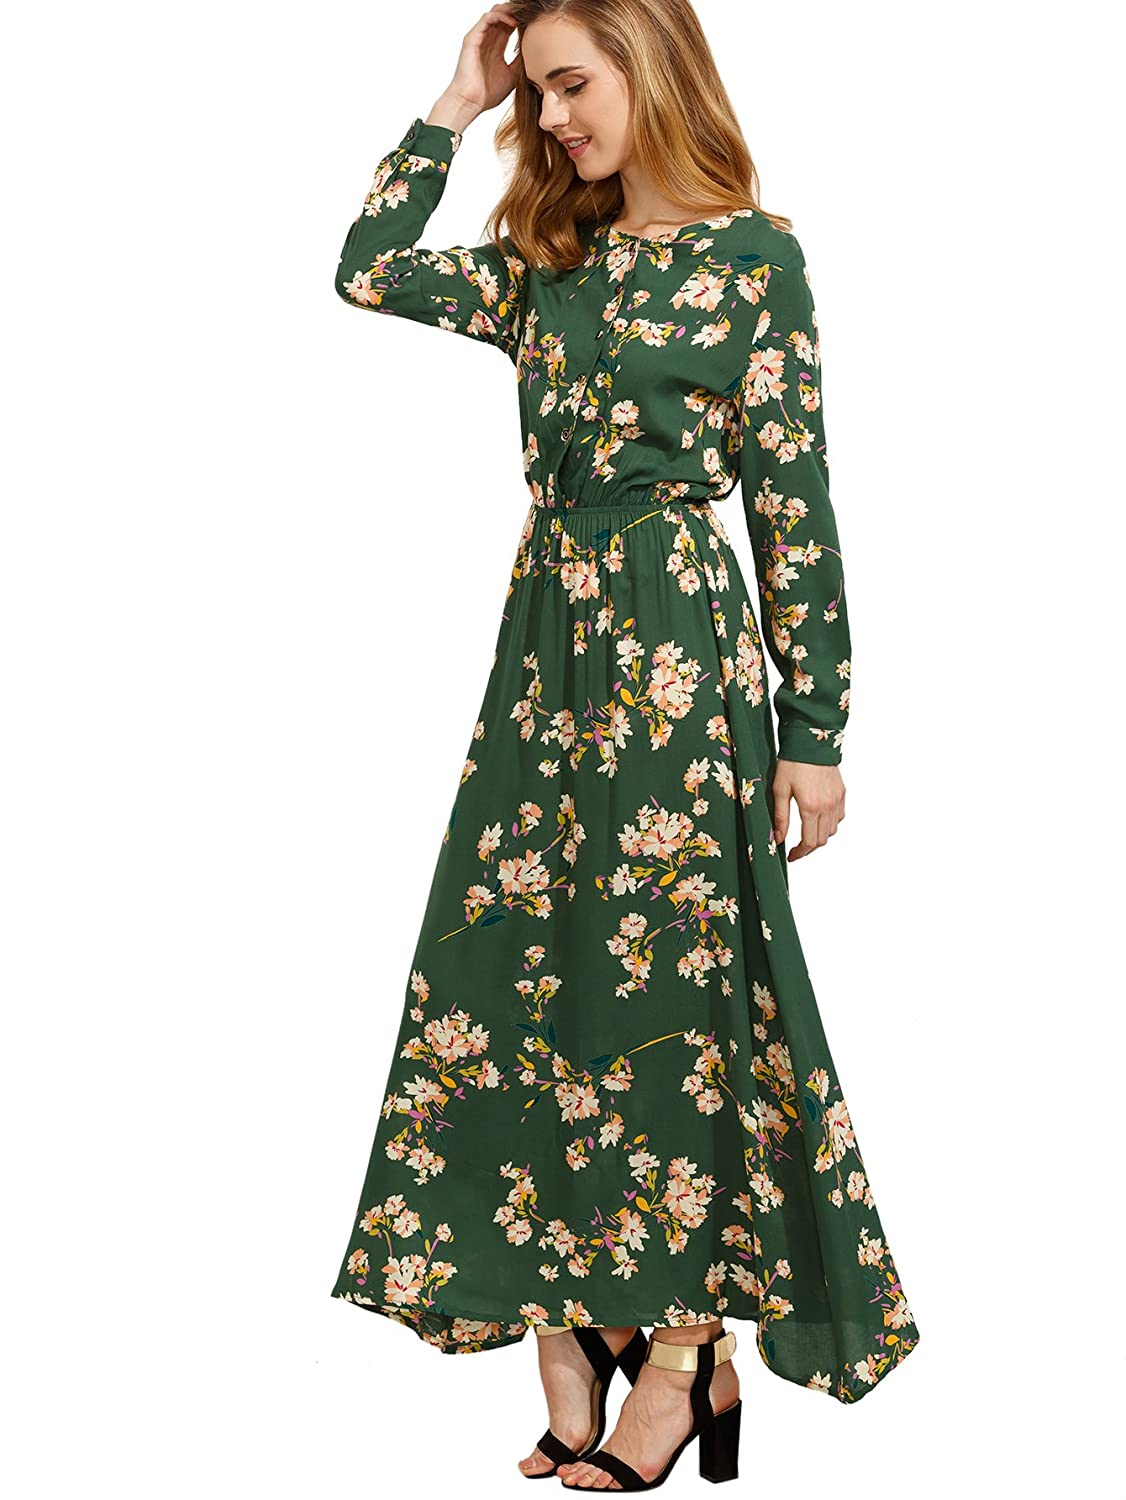 70s Costumes: Disco Costumes, Hippie Outfits Floerns Womens Long Sleeve Floral Print Button Casual Maxi Dress $39.99 AT vintagedancer.com